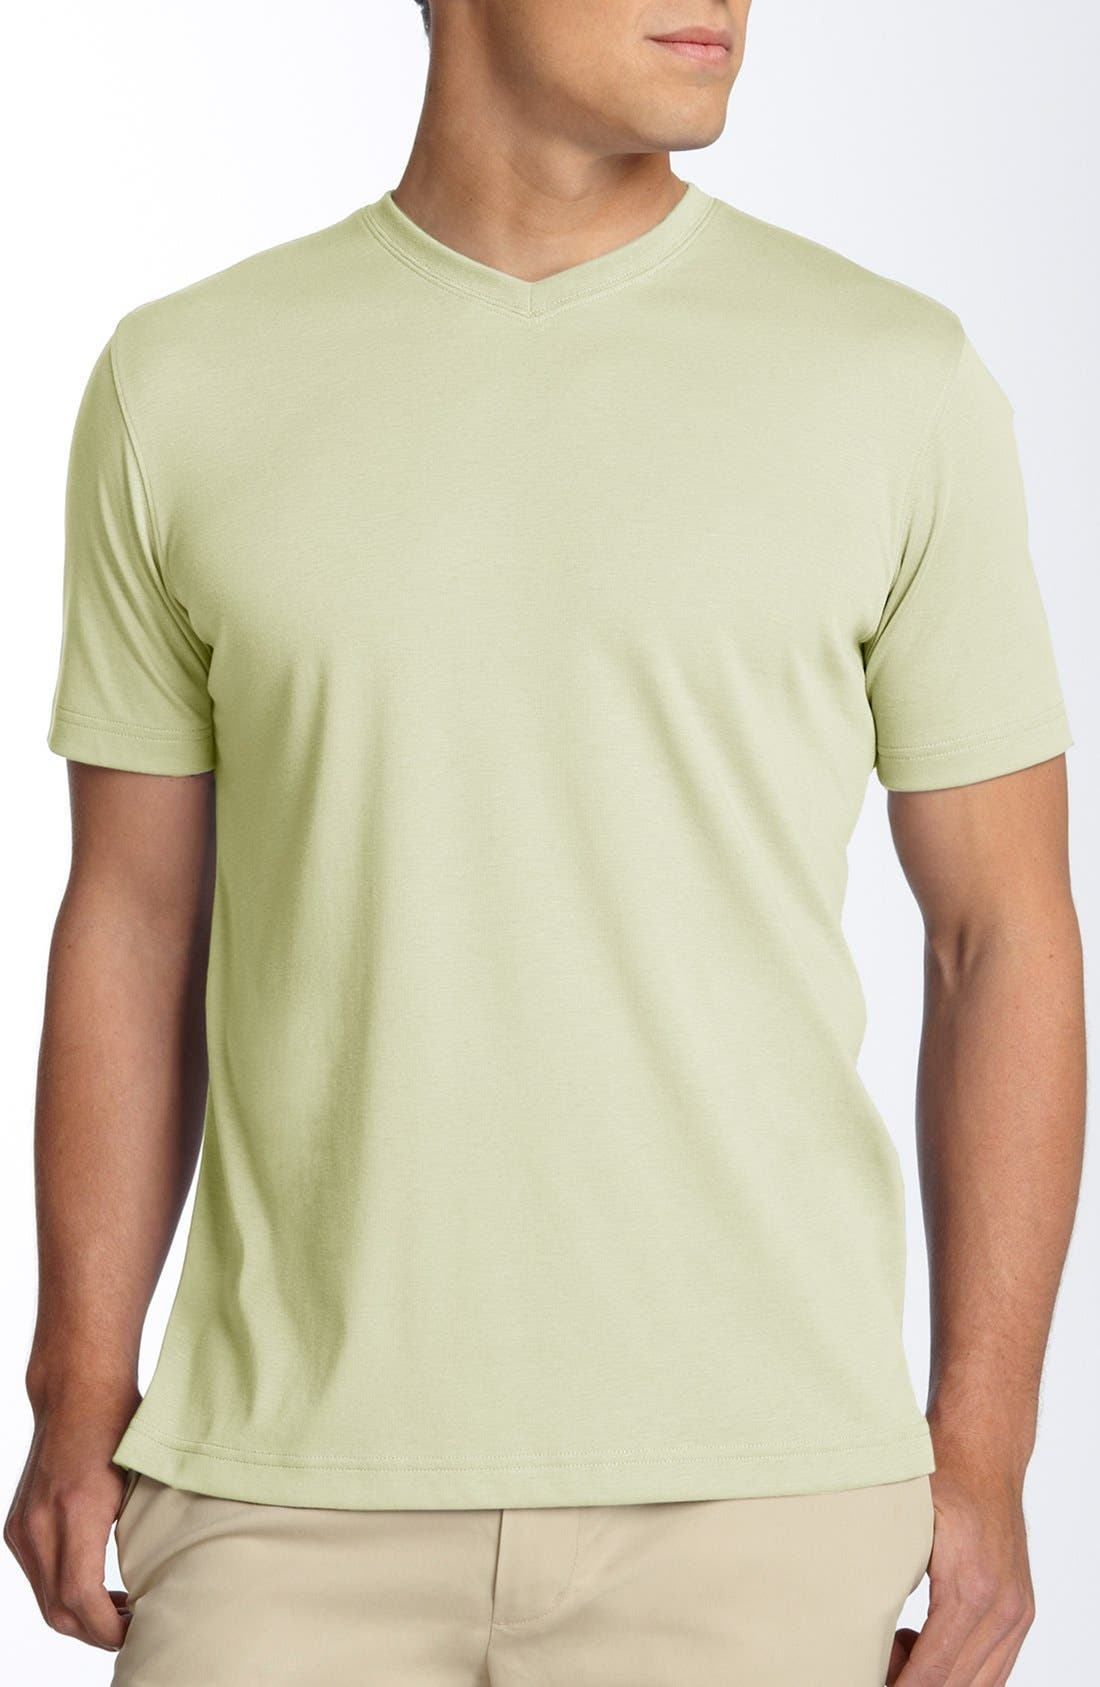 Alternate Image 1 Selected - Robert Barakett 'Georgia' V-Neck T-Shirt